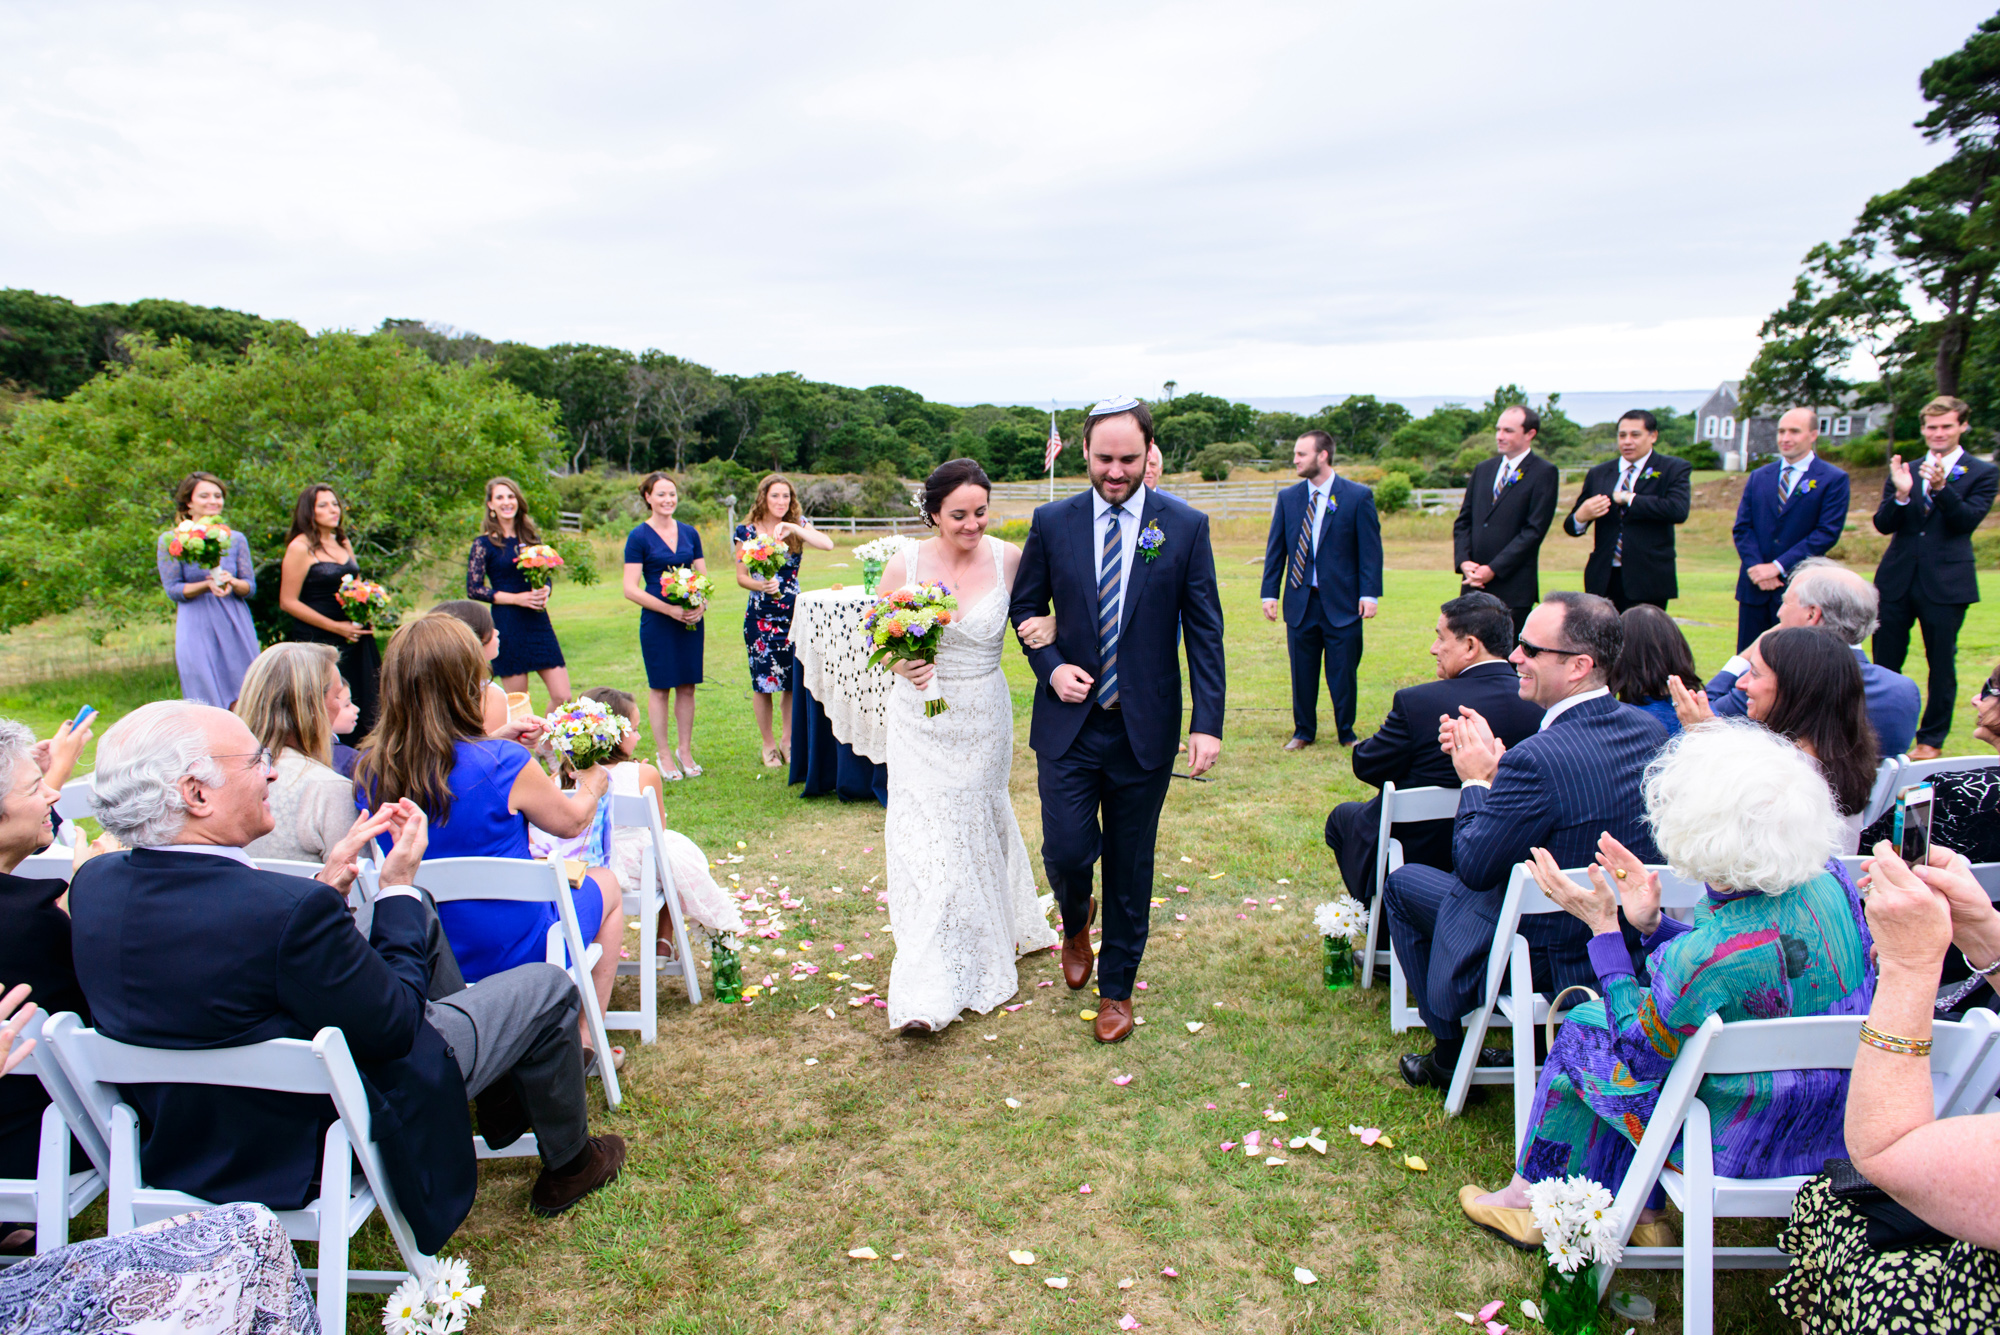 A bride and groom exit their ceremony at the field at The Beach Plum Inn & Restaurant photo by David Welch Photography